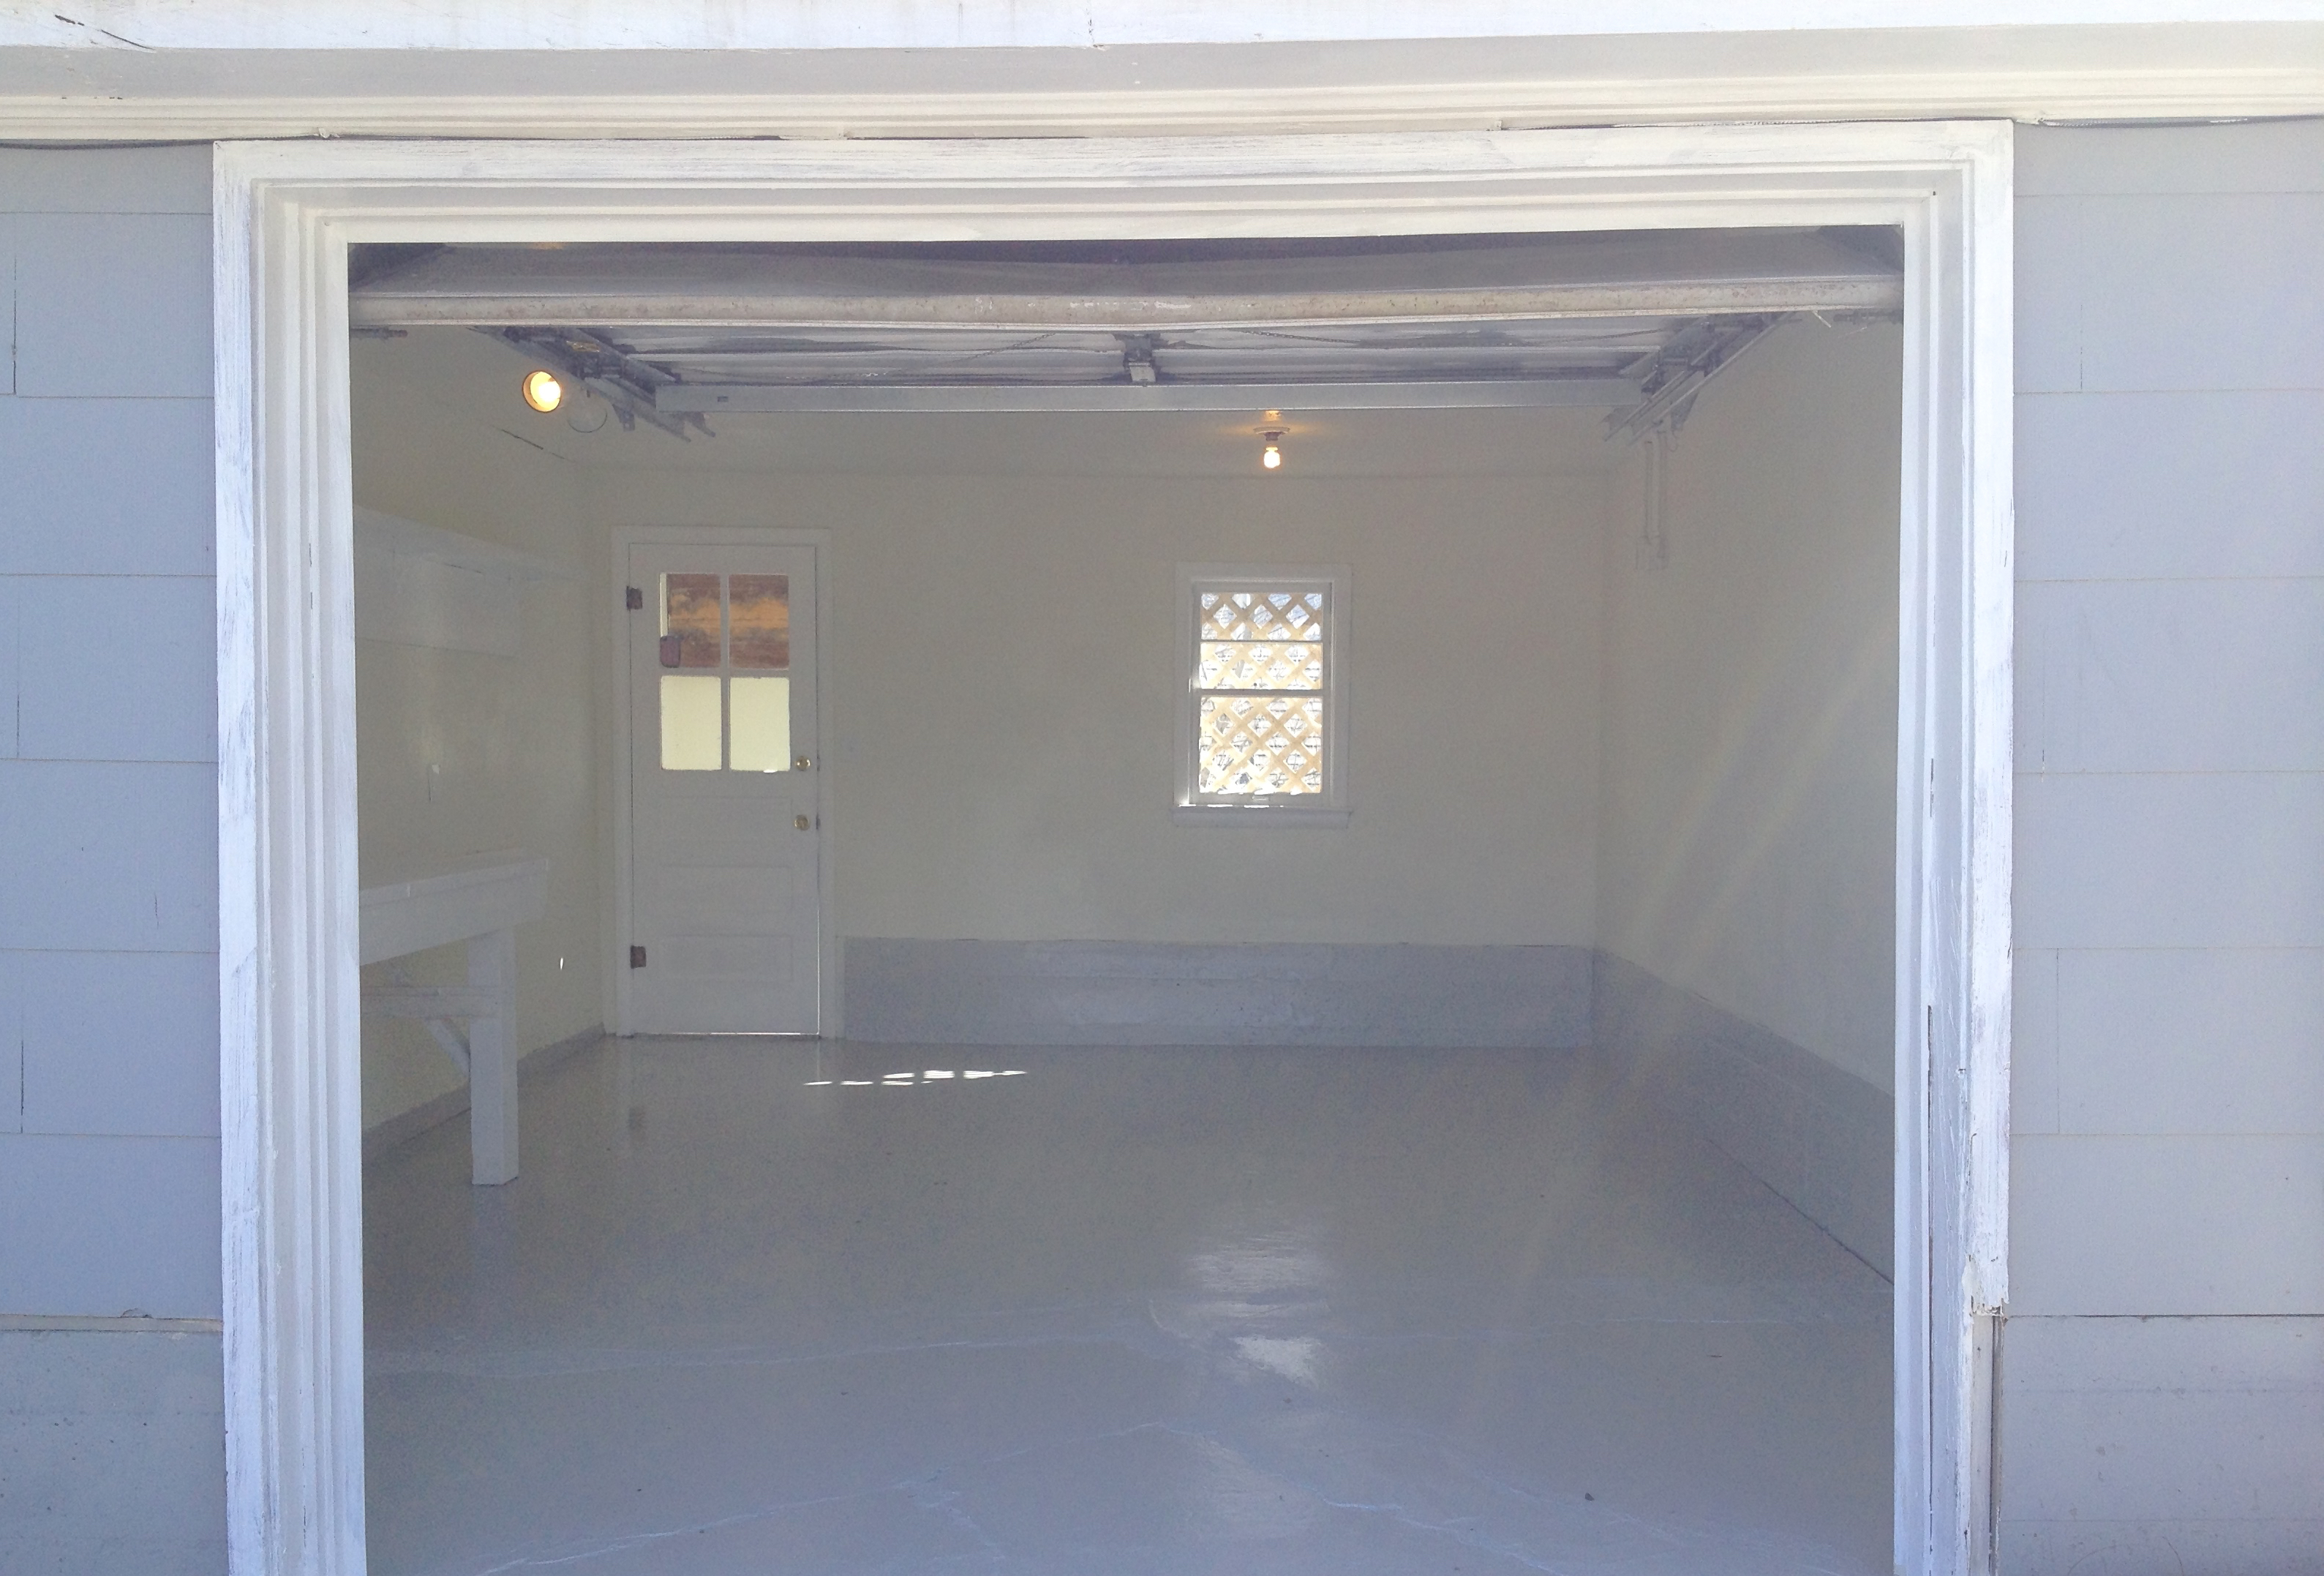 4 Bedroom 2 Bath House With Garage 1195 00 Per Month